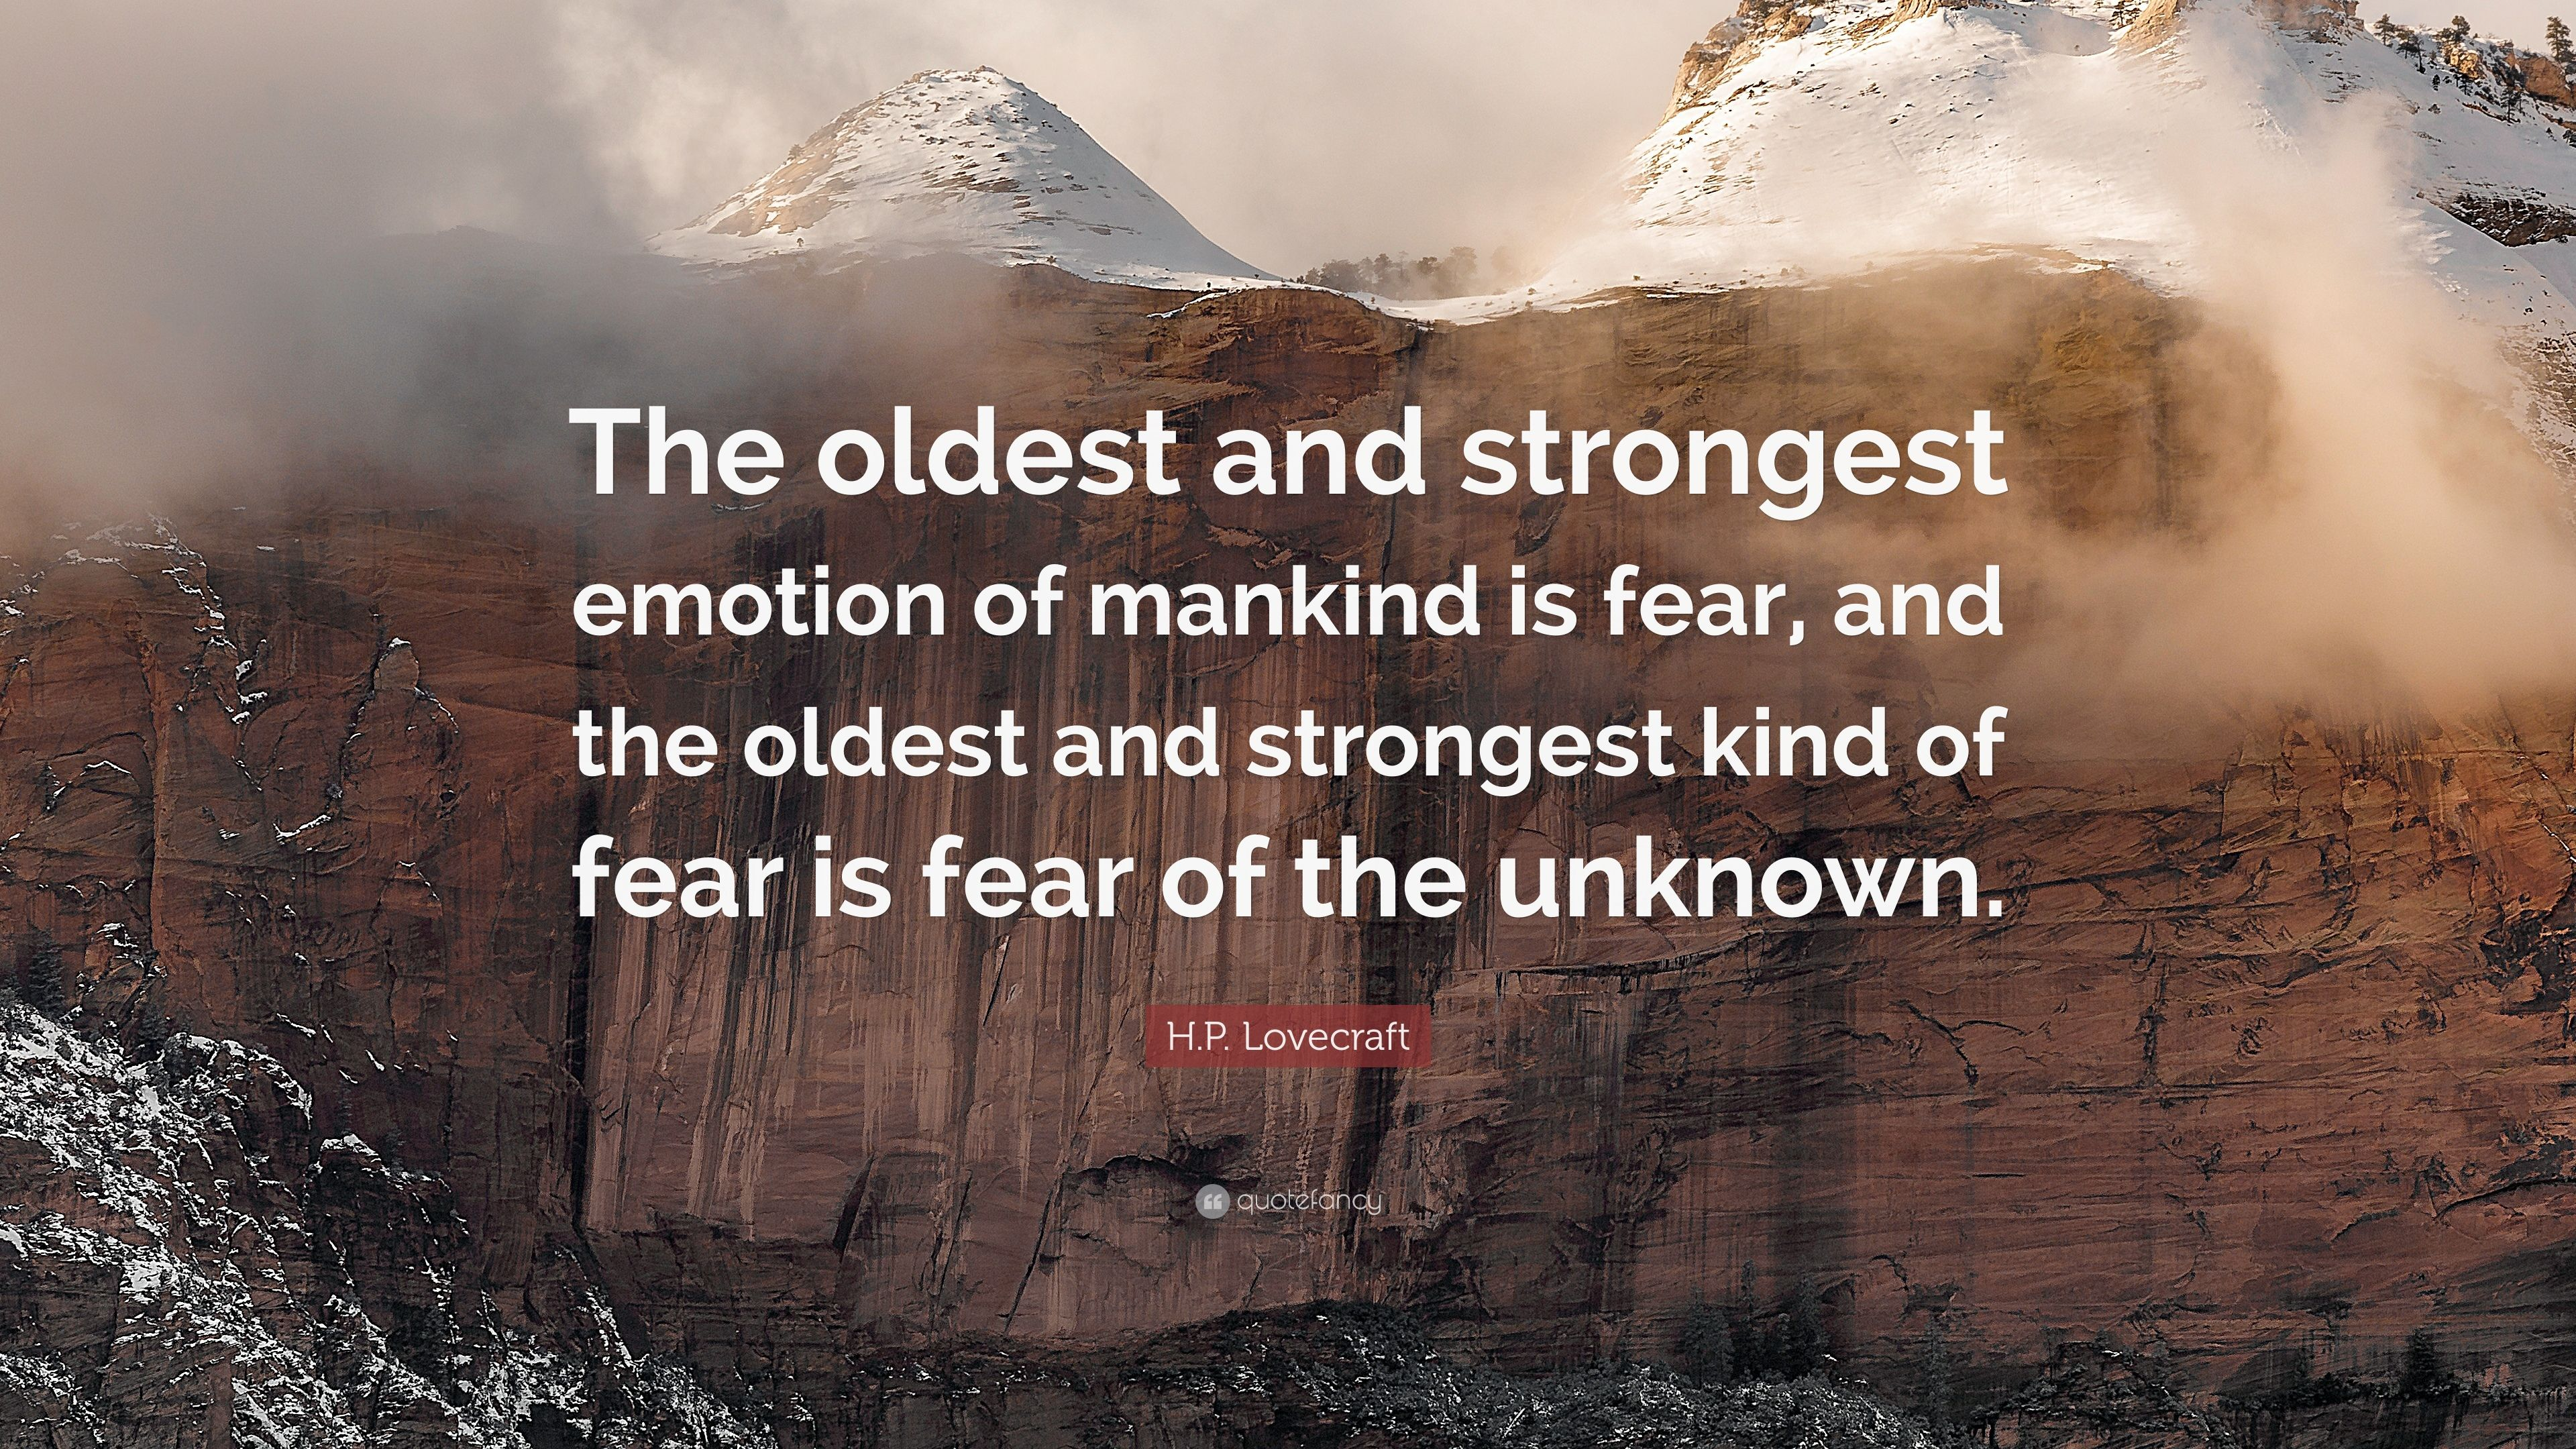 the oldest and strongest emotion of mankind is fear essay The oldest and strongest emotion of mankind is fear, and the oldest and strongest kind of fear is fear of the unknown these facts few psychologists will dispute, and their admitted truth must establish for all time the genuineness and dignity of the weirdly horrible tale as a literary form.